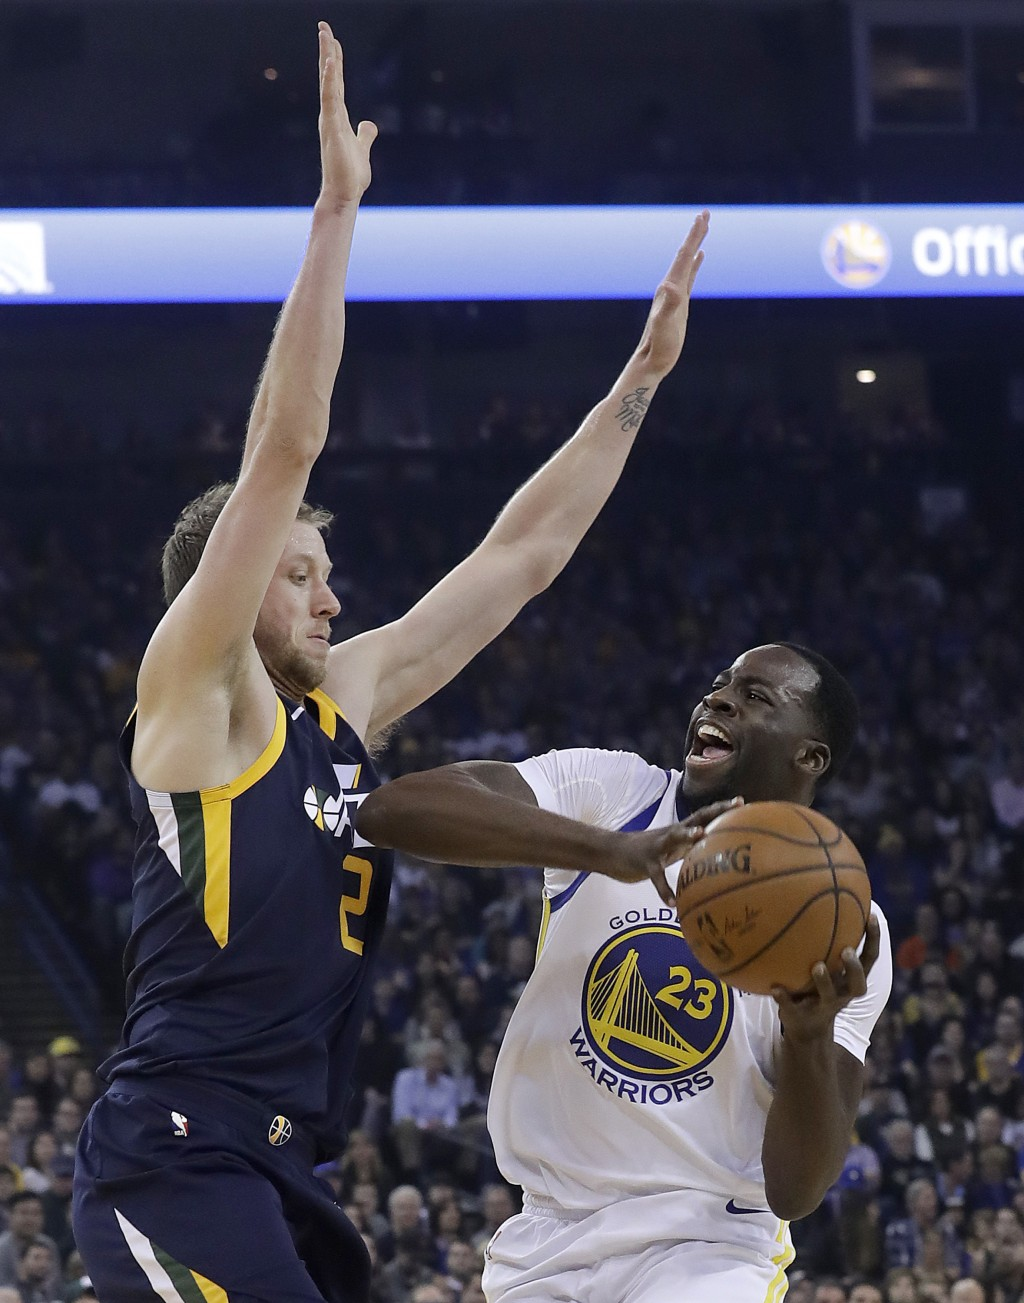 Golden State Warriors forward Draymond Green (23) is defended by Utah Jazz forward Joe Ingles during the first half of an NBA basketball game in Oakla...